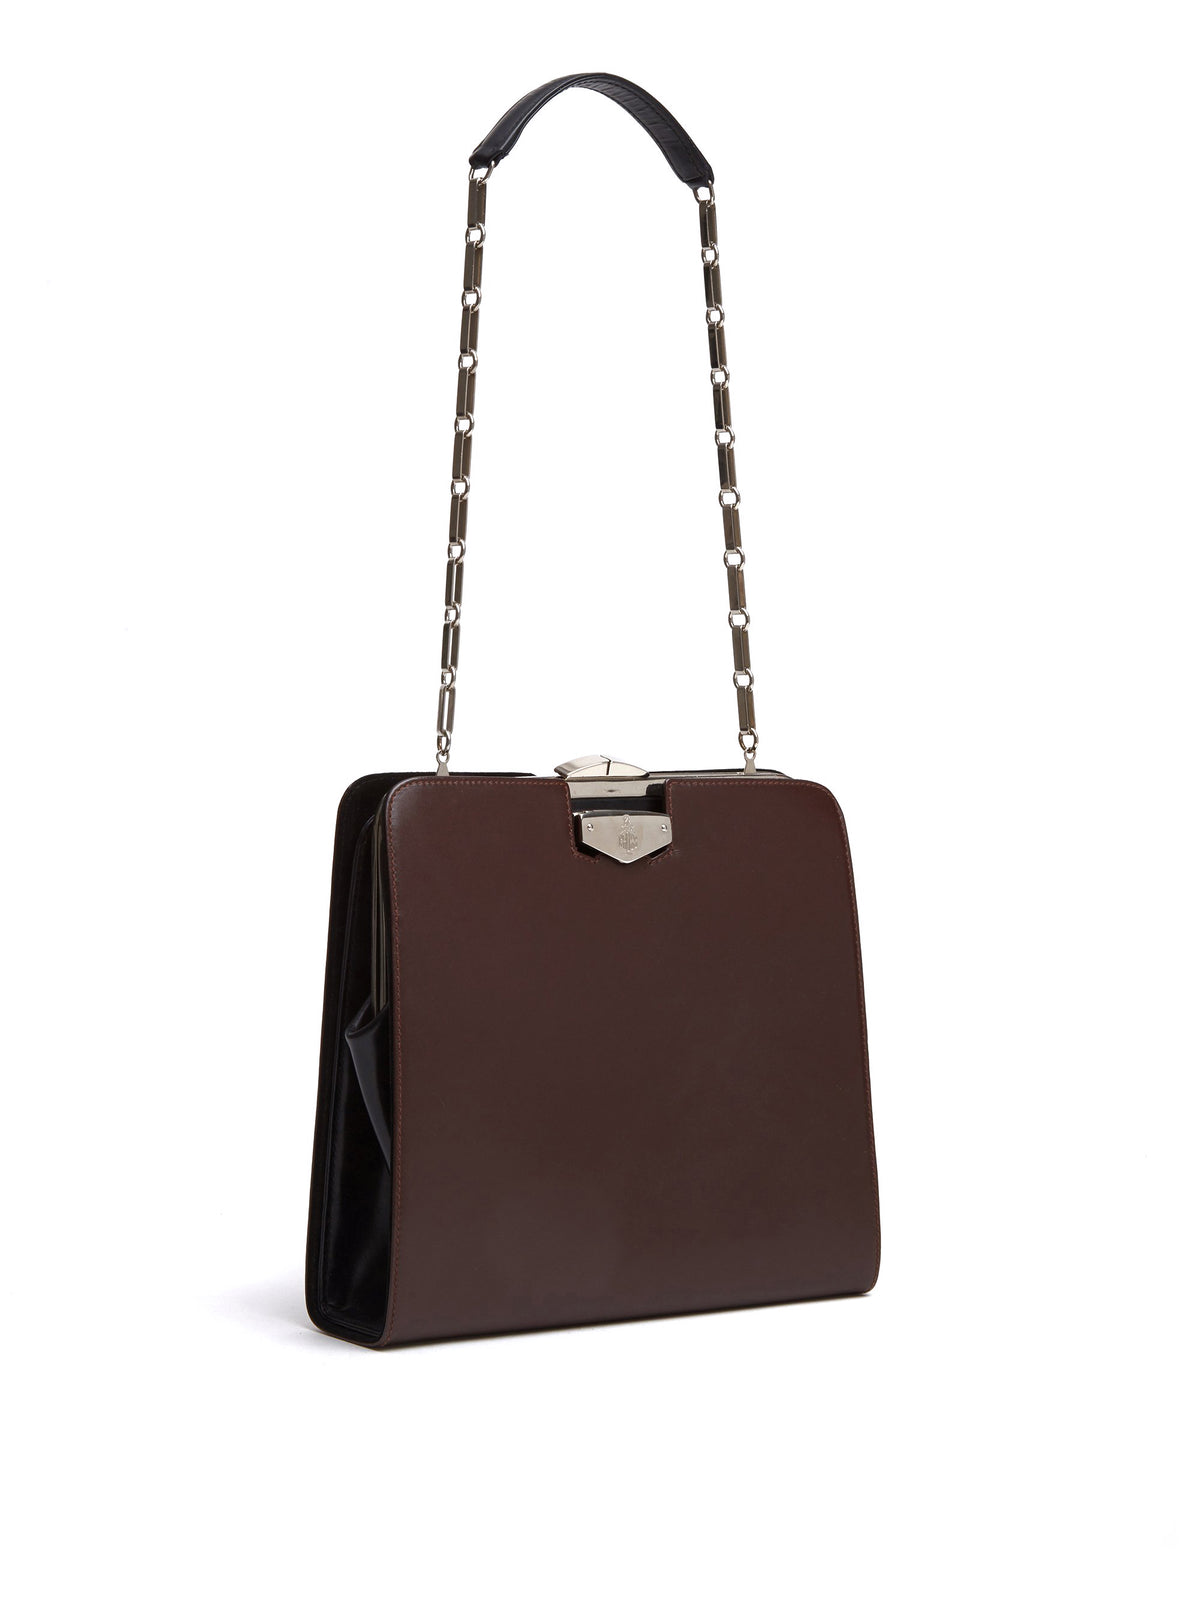 Mark Cross Vintage Convertible Leather Bag Chocolate Side